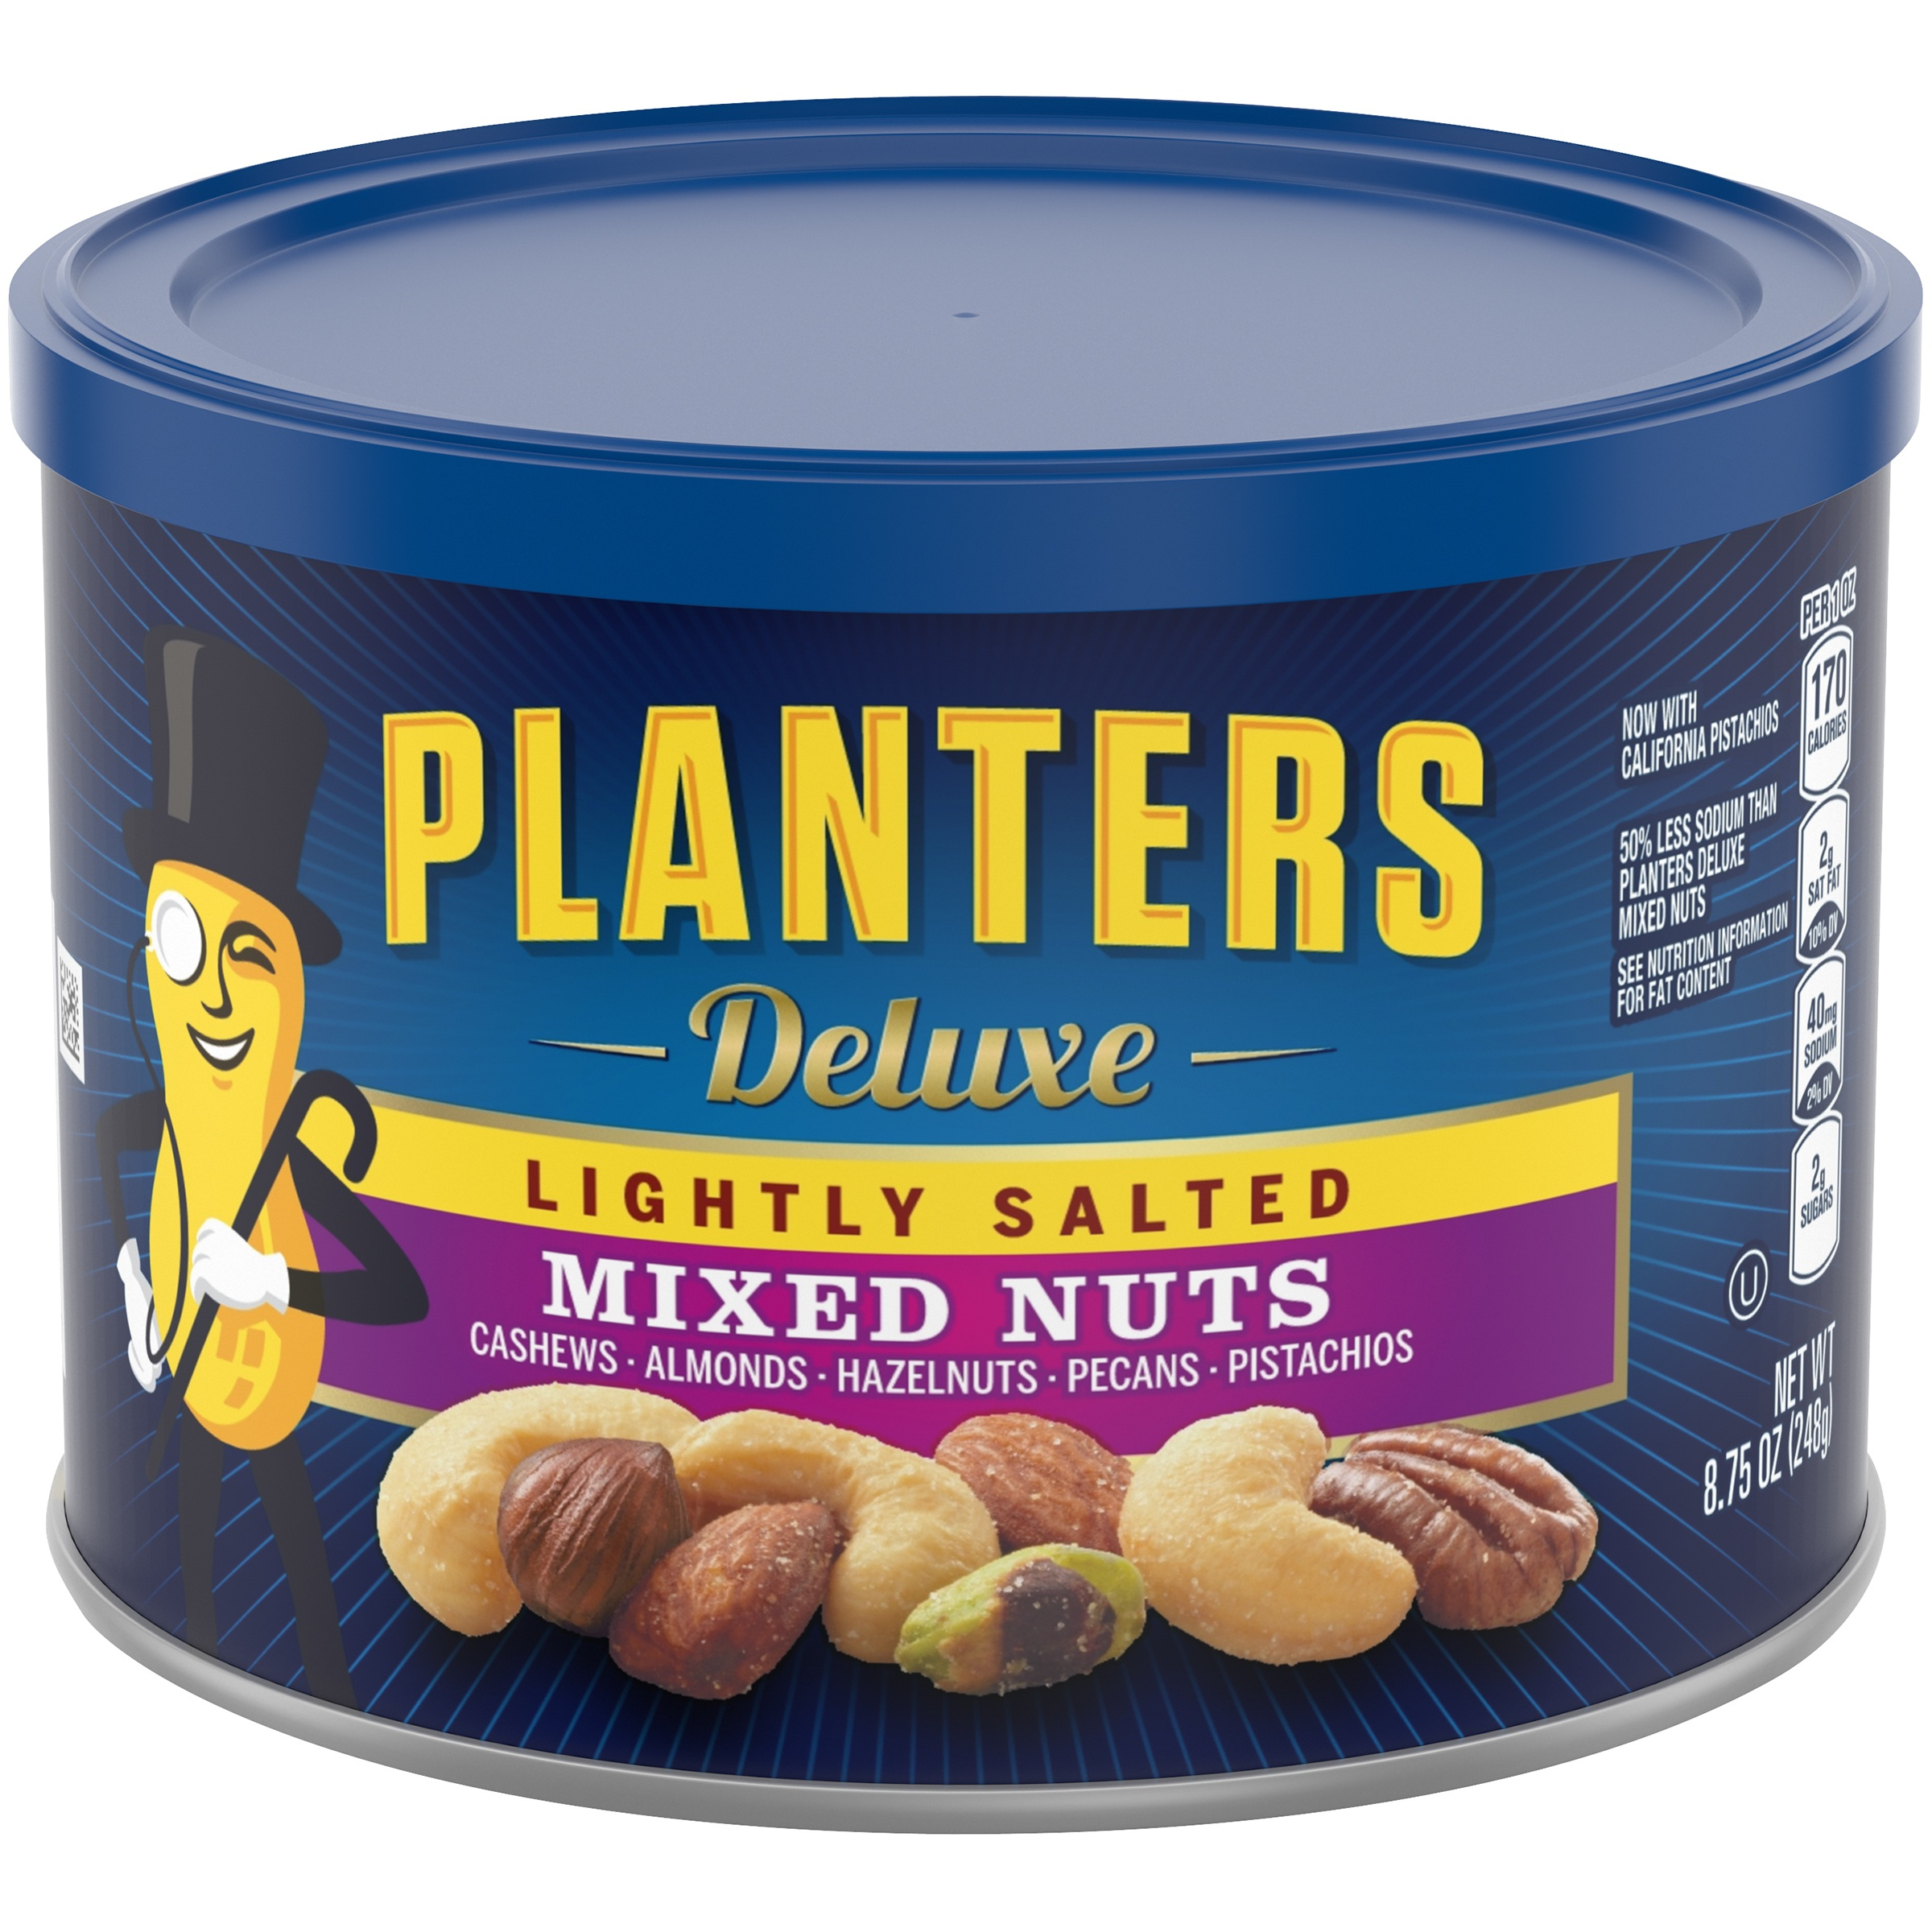 Planters Deluxe Lightly Salted Mixed Nuts 8.75 oz. Canister